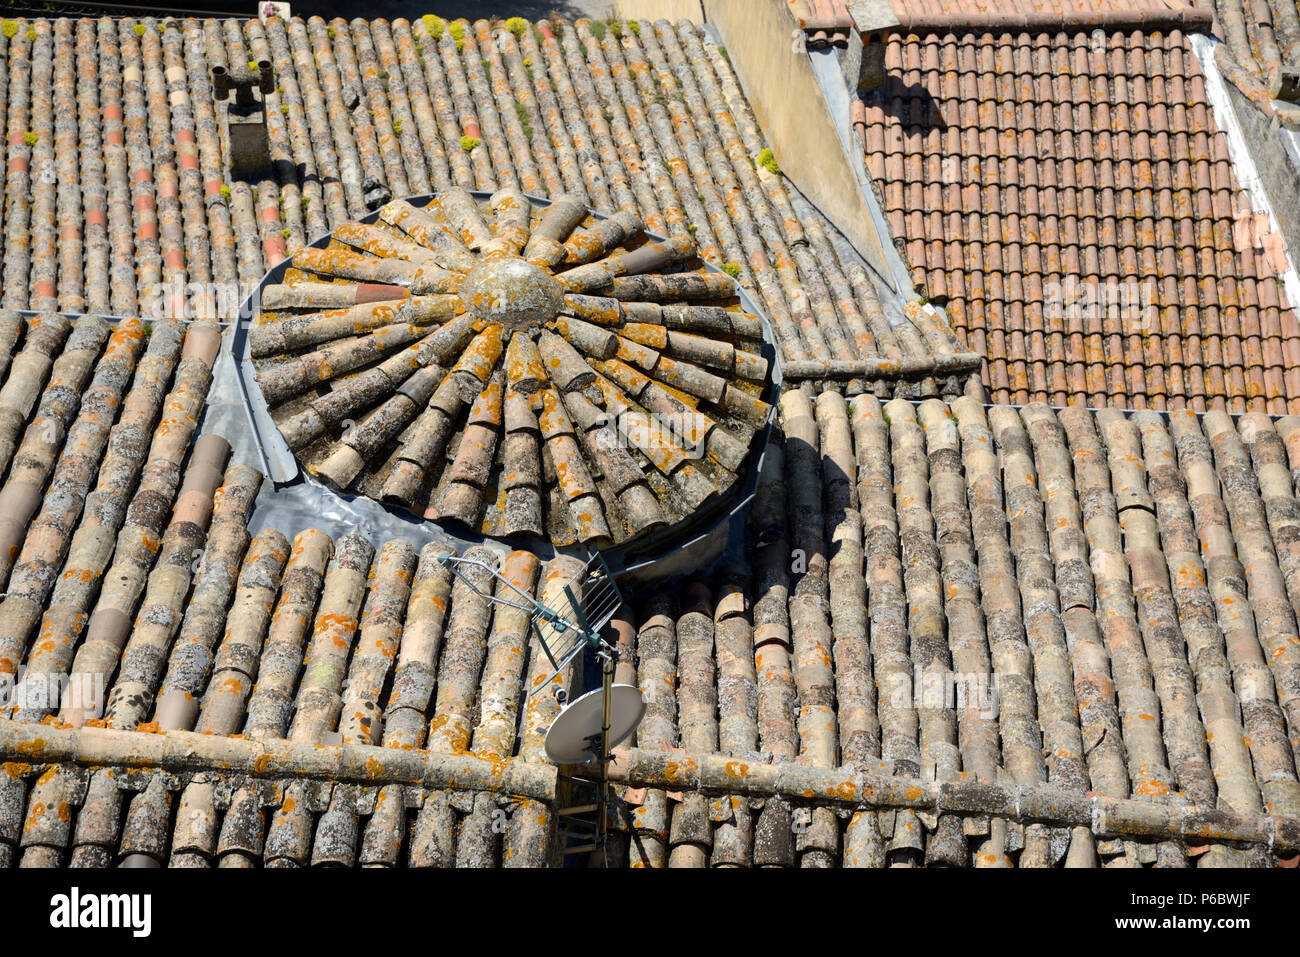 Circular Tiled Roof and View over the Terracotta Tiled Roofs of Grignan Drôme Provence France - Stock Image